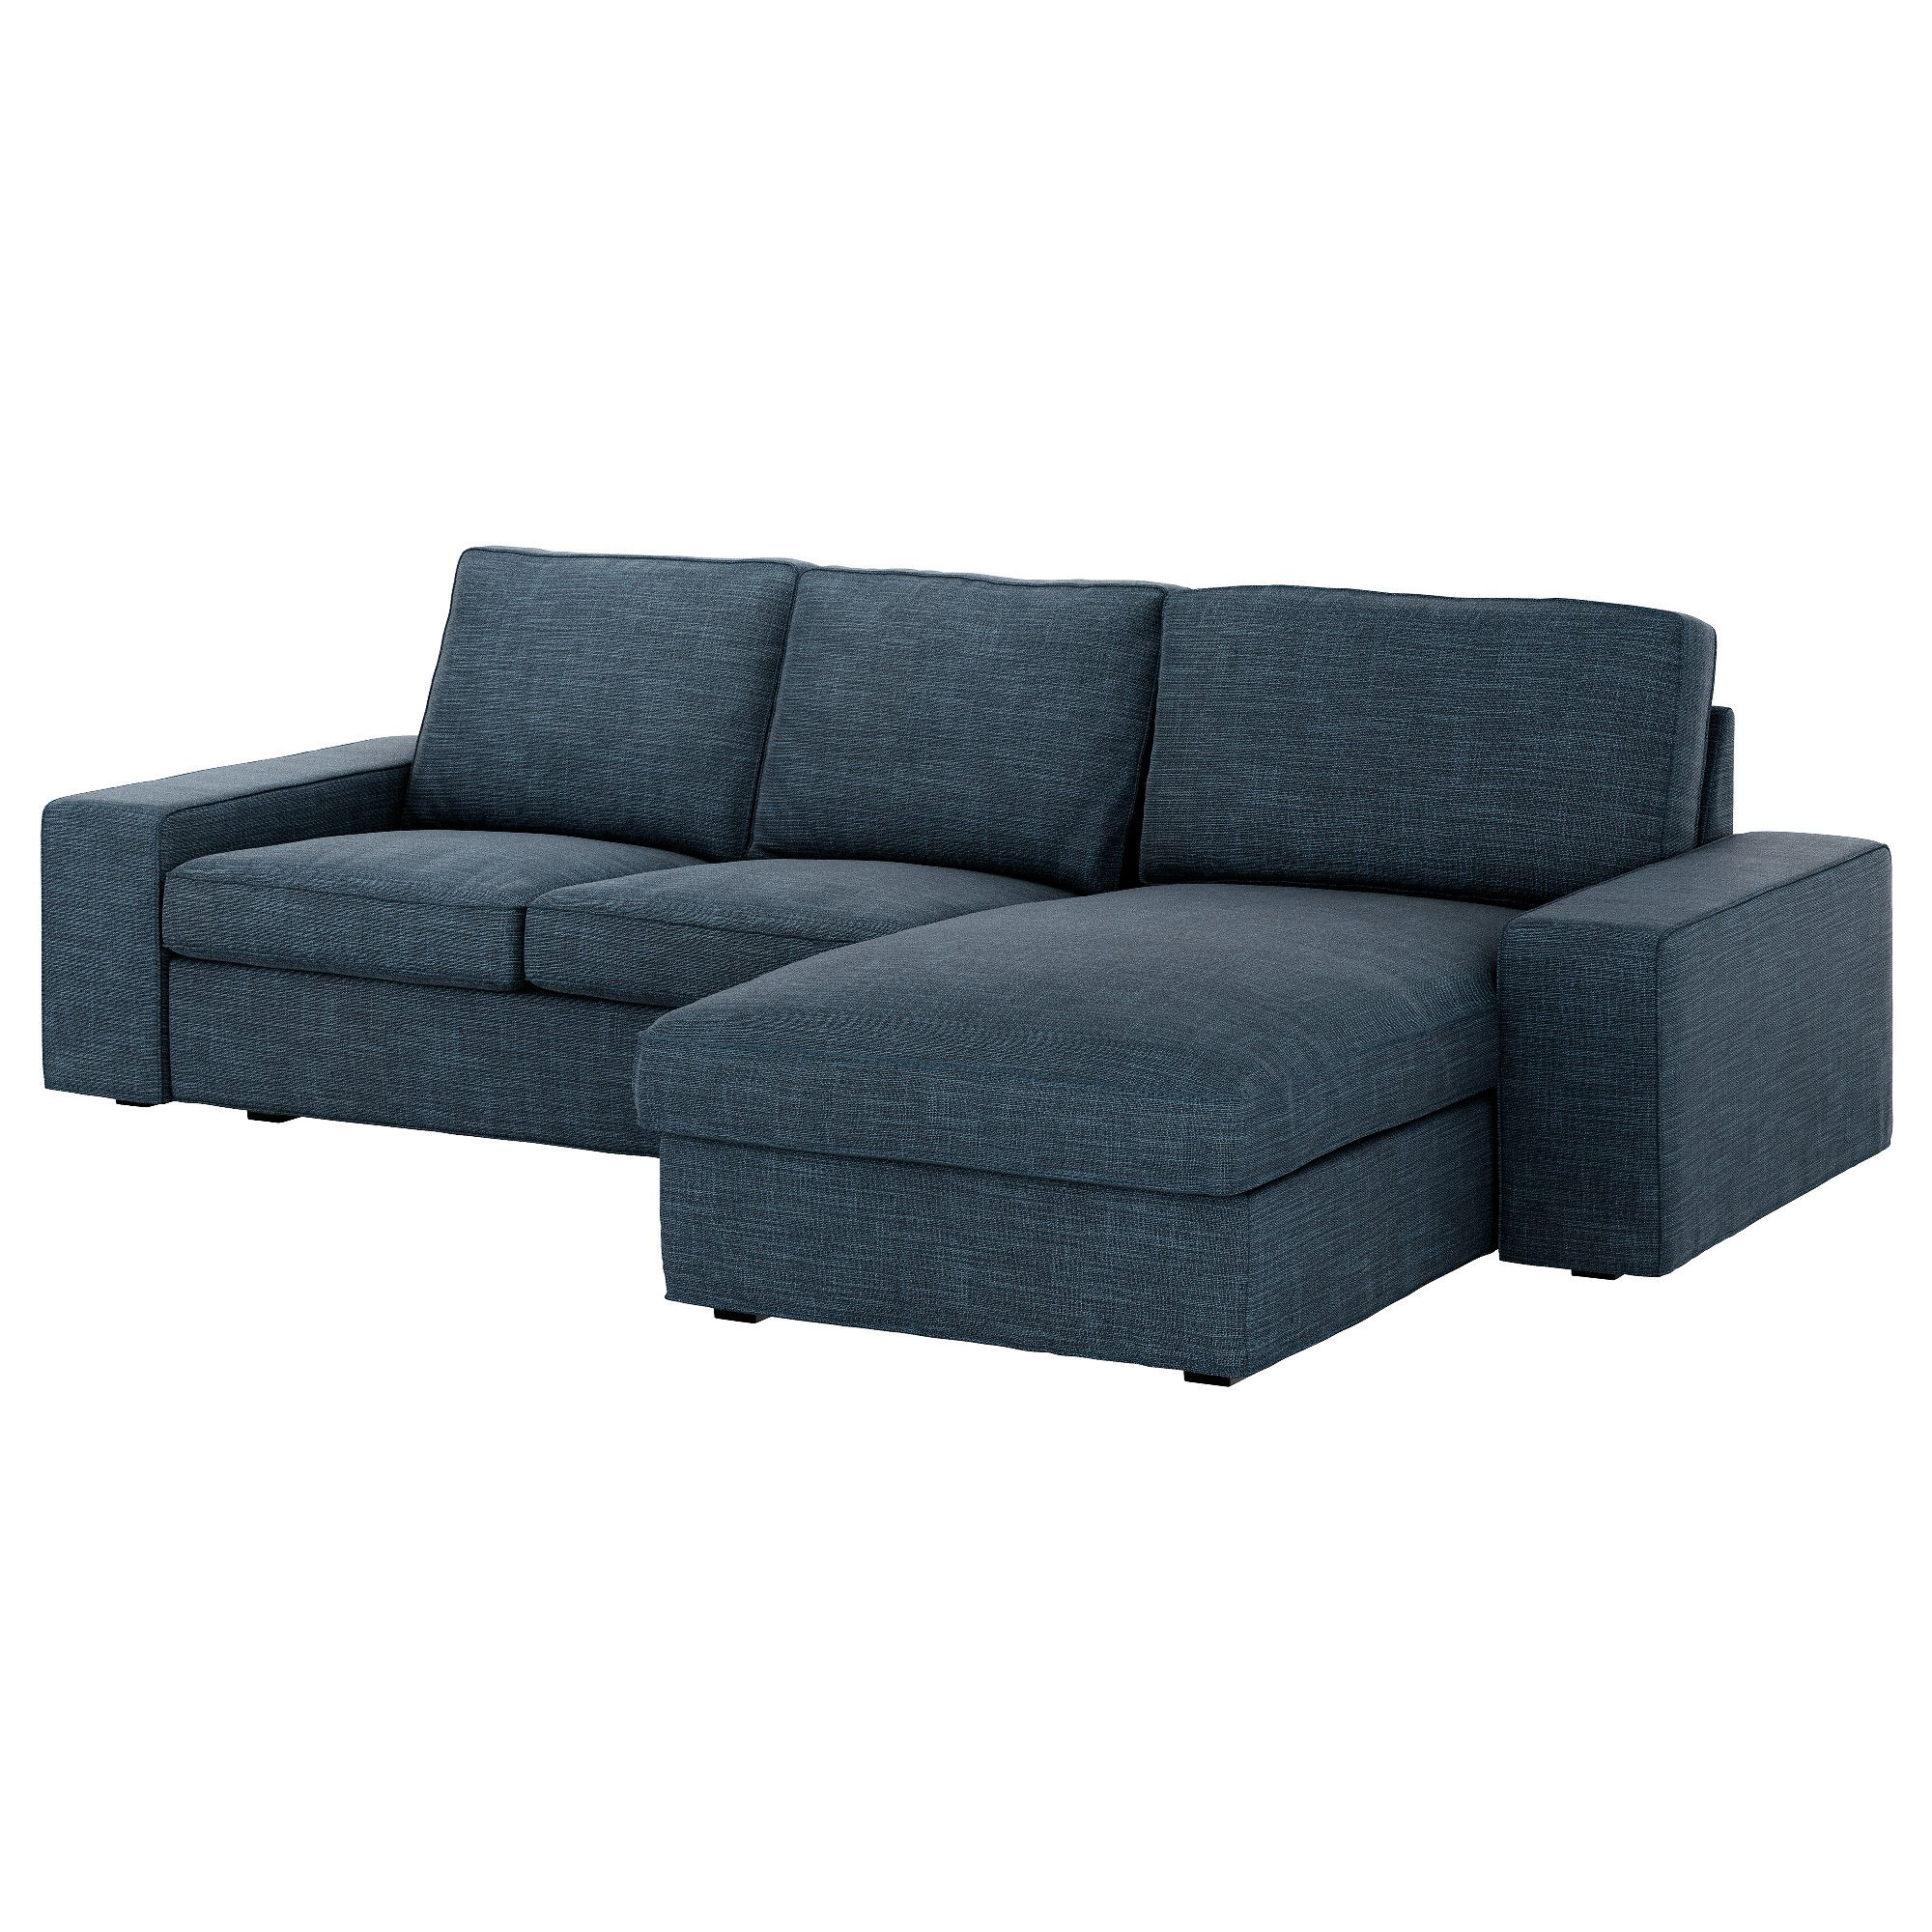 Kivik Sofa With Chaise Hillared Anthracite Ikea Too Small